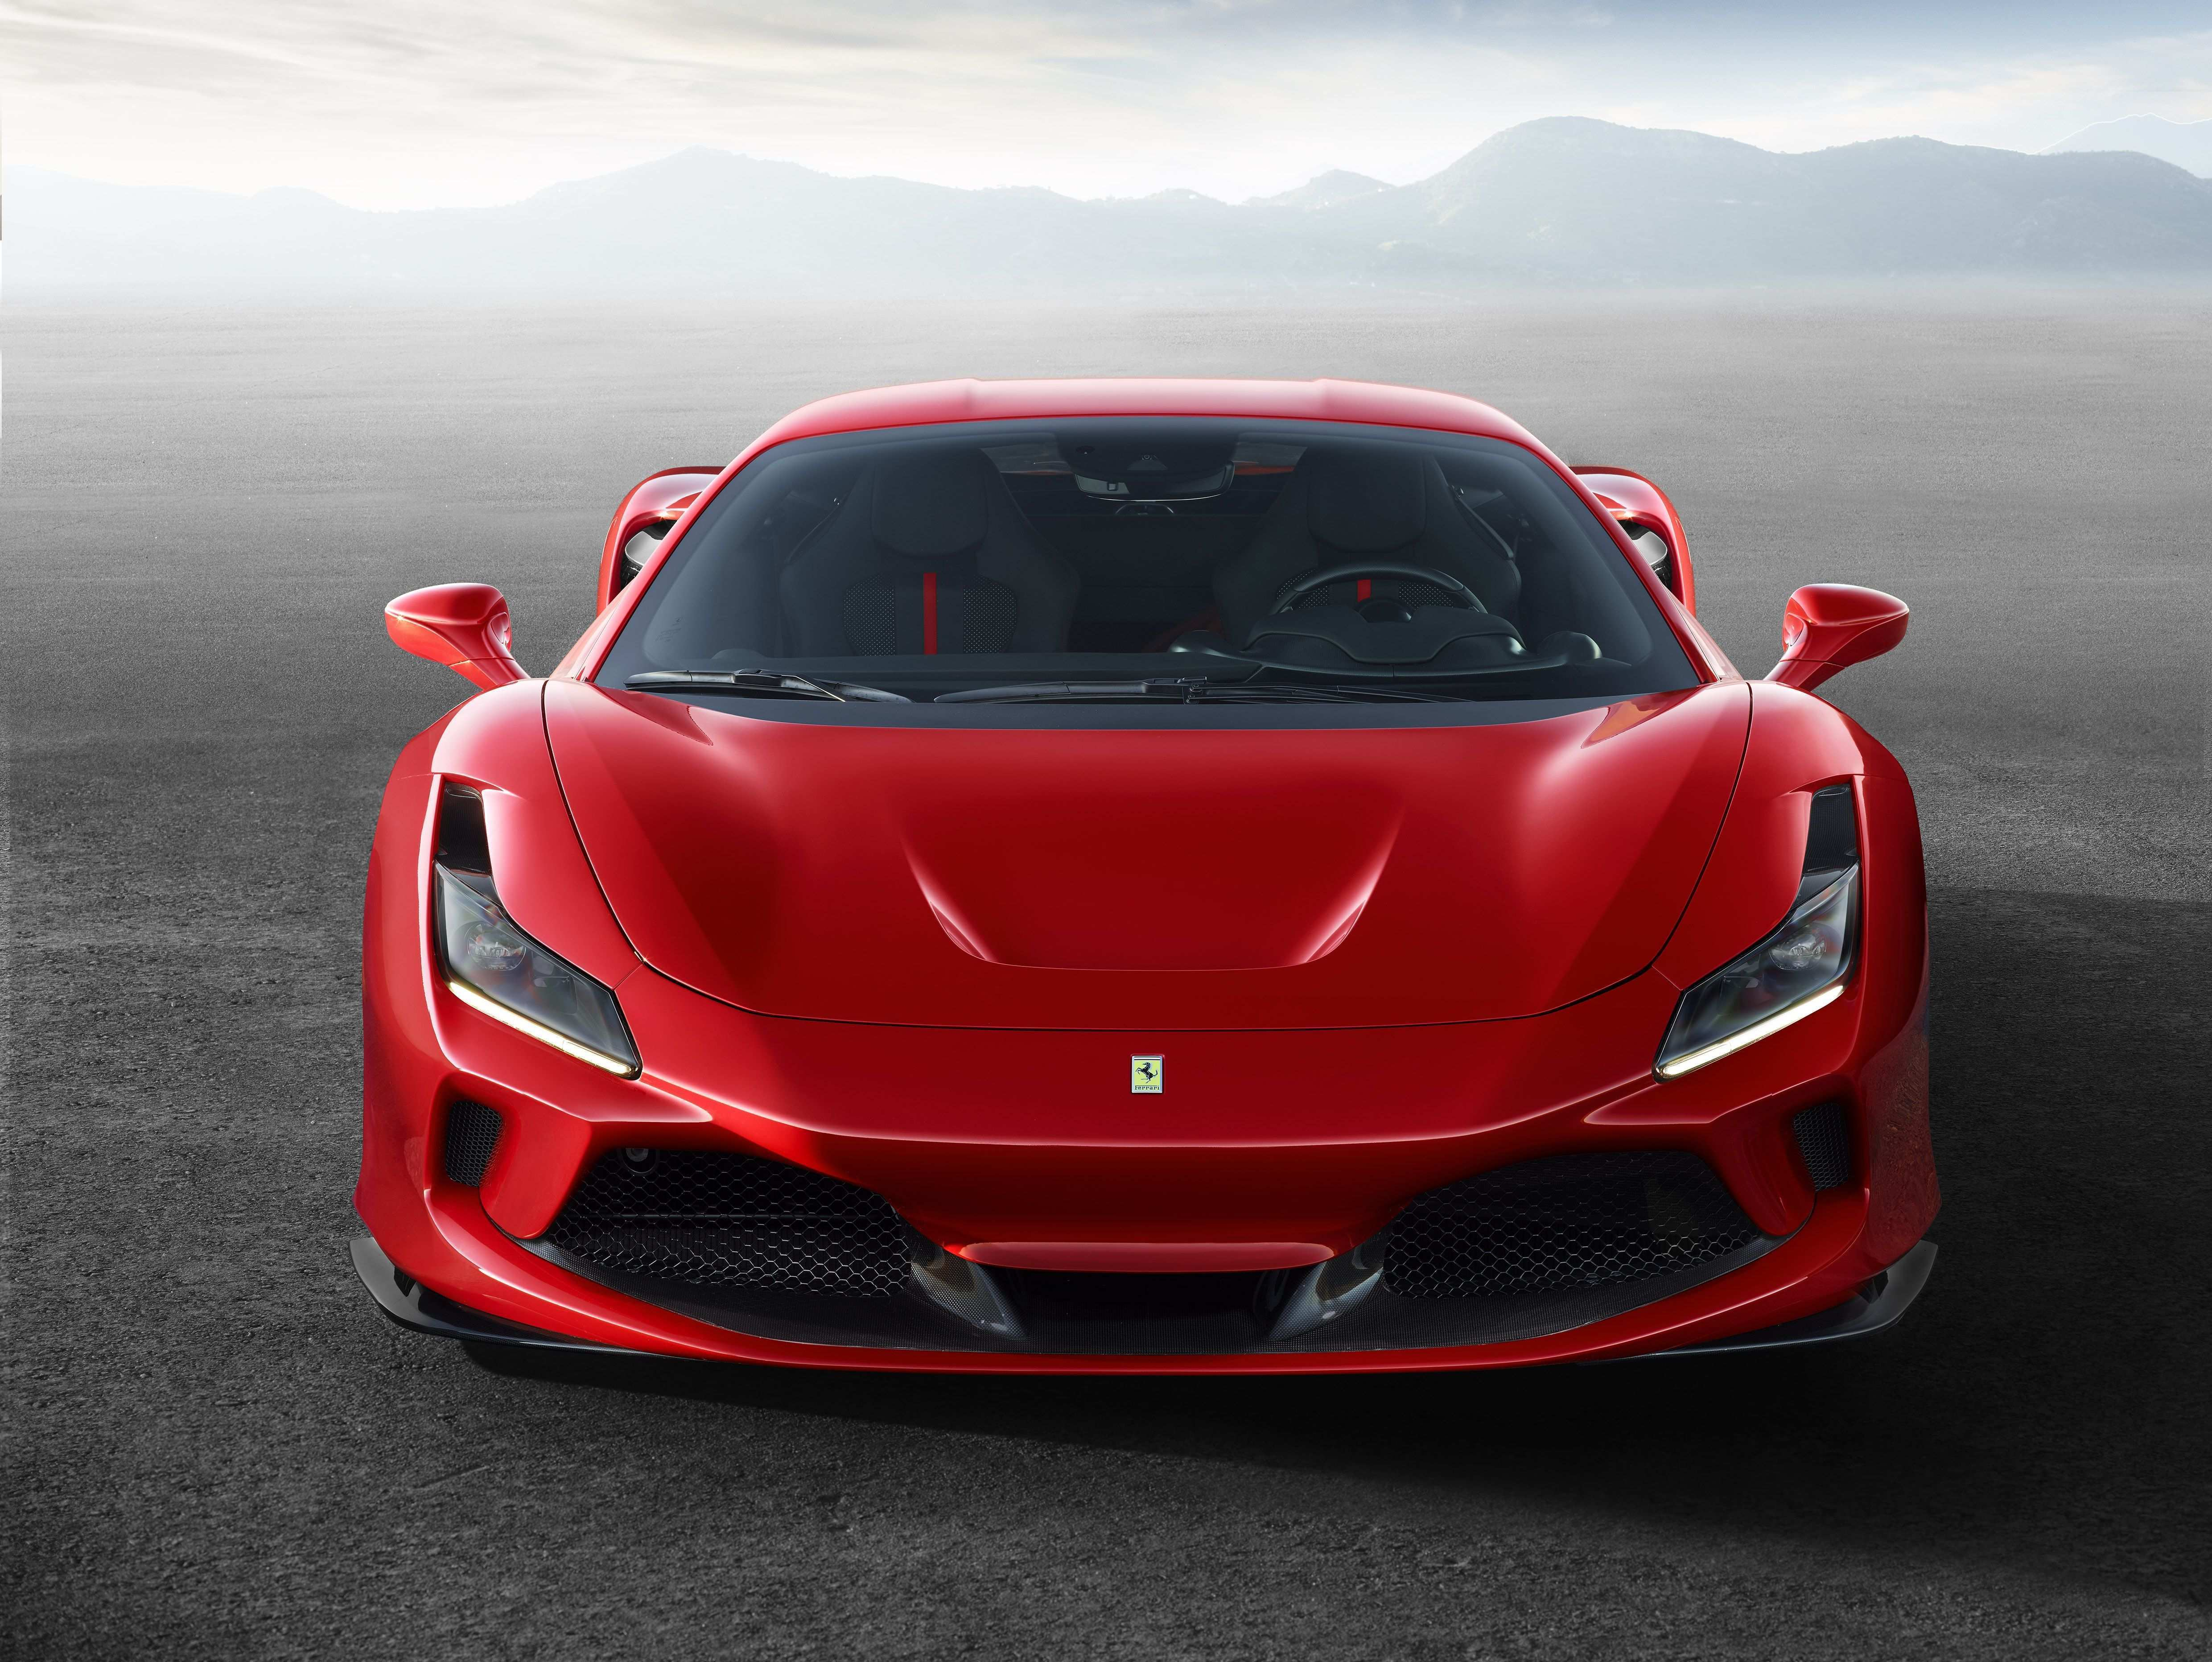 78 All New 2020 Ferrari Cars Overview